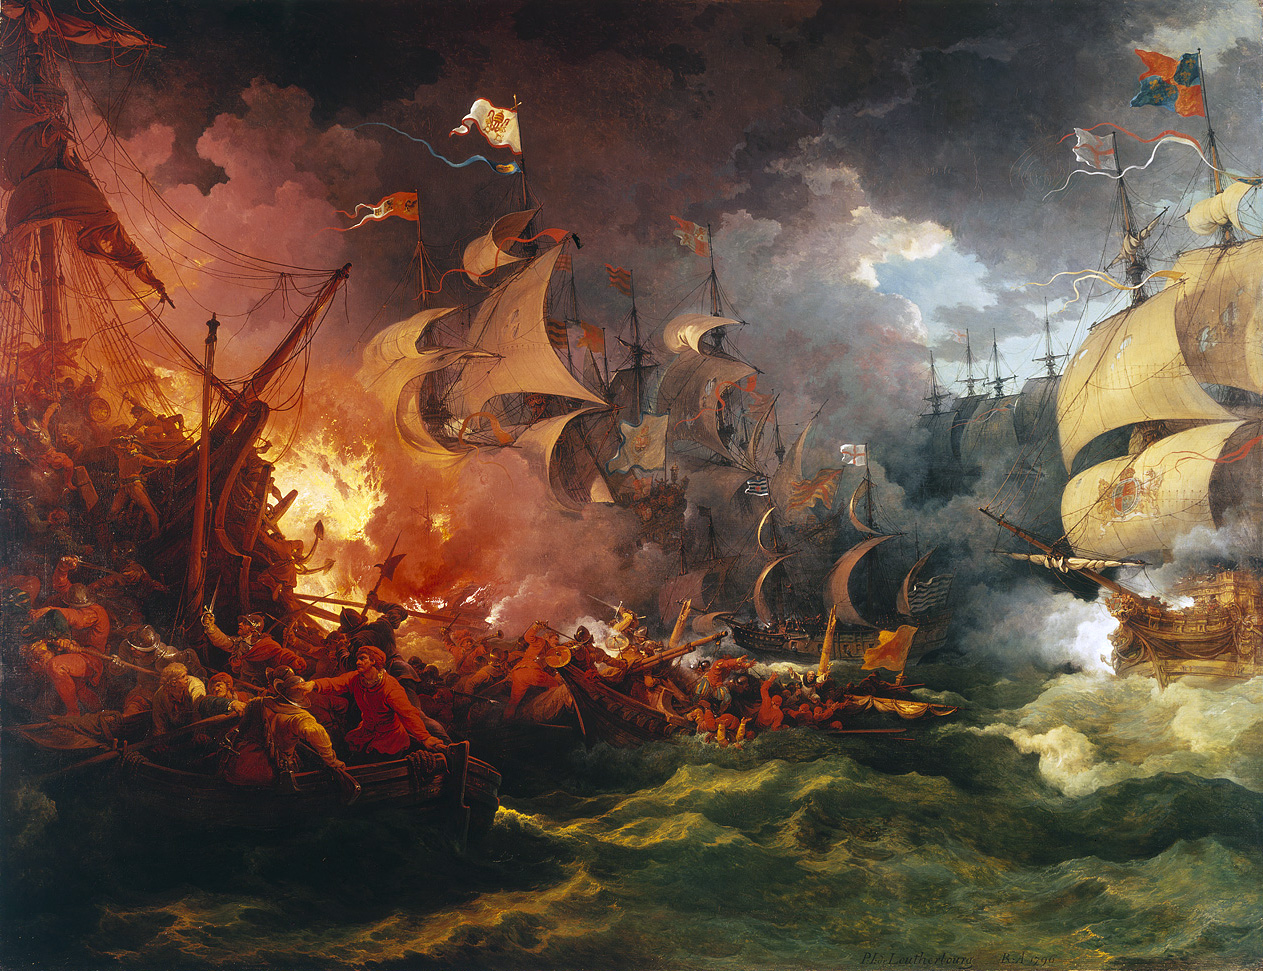 File:Loutherbourg-Spanish Armada.jpg